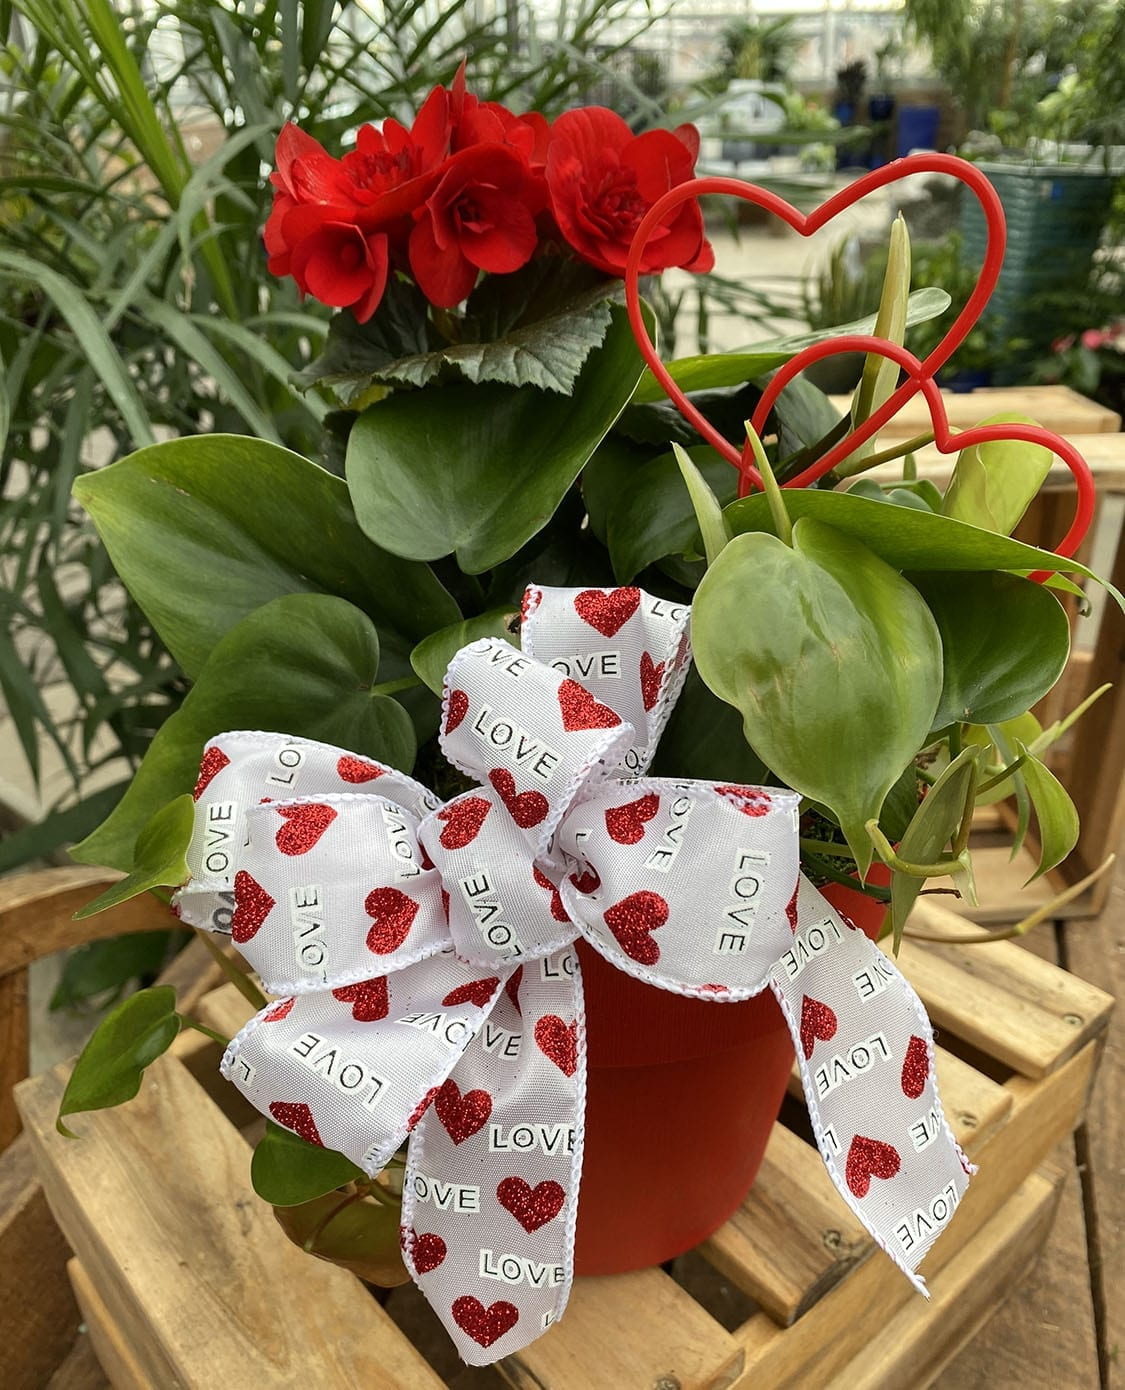 kid's activity, valentine's day gift, blooming plant